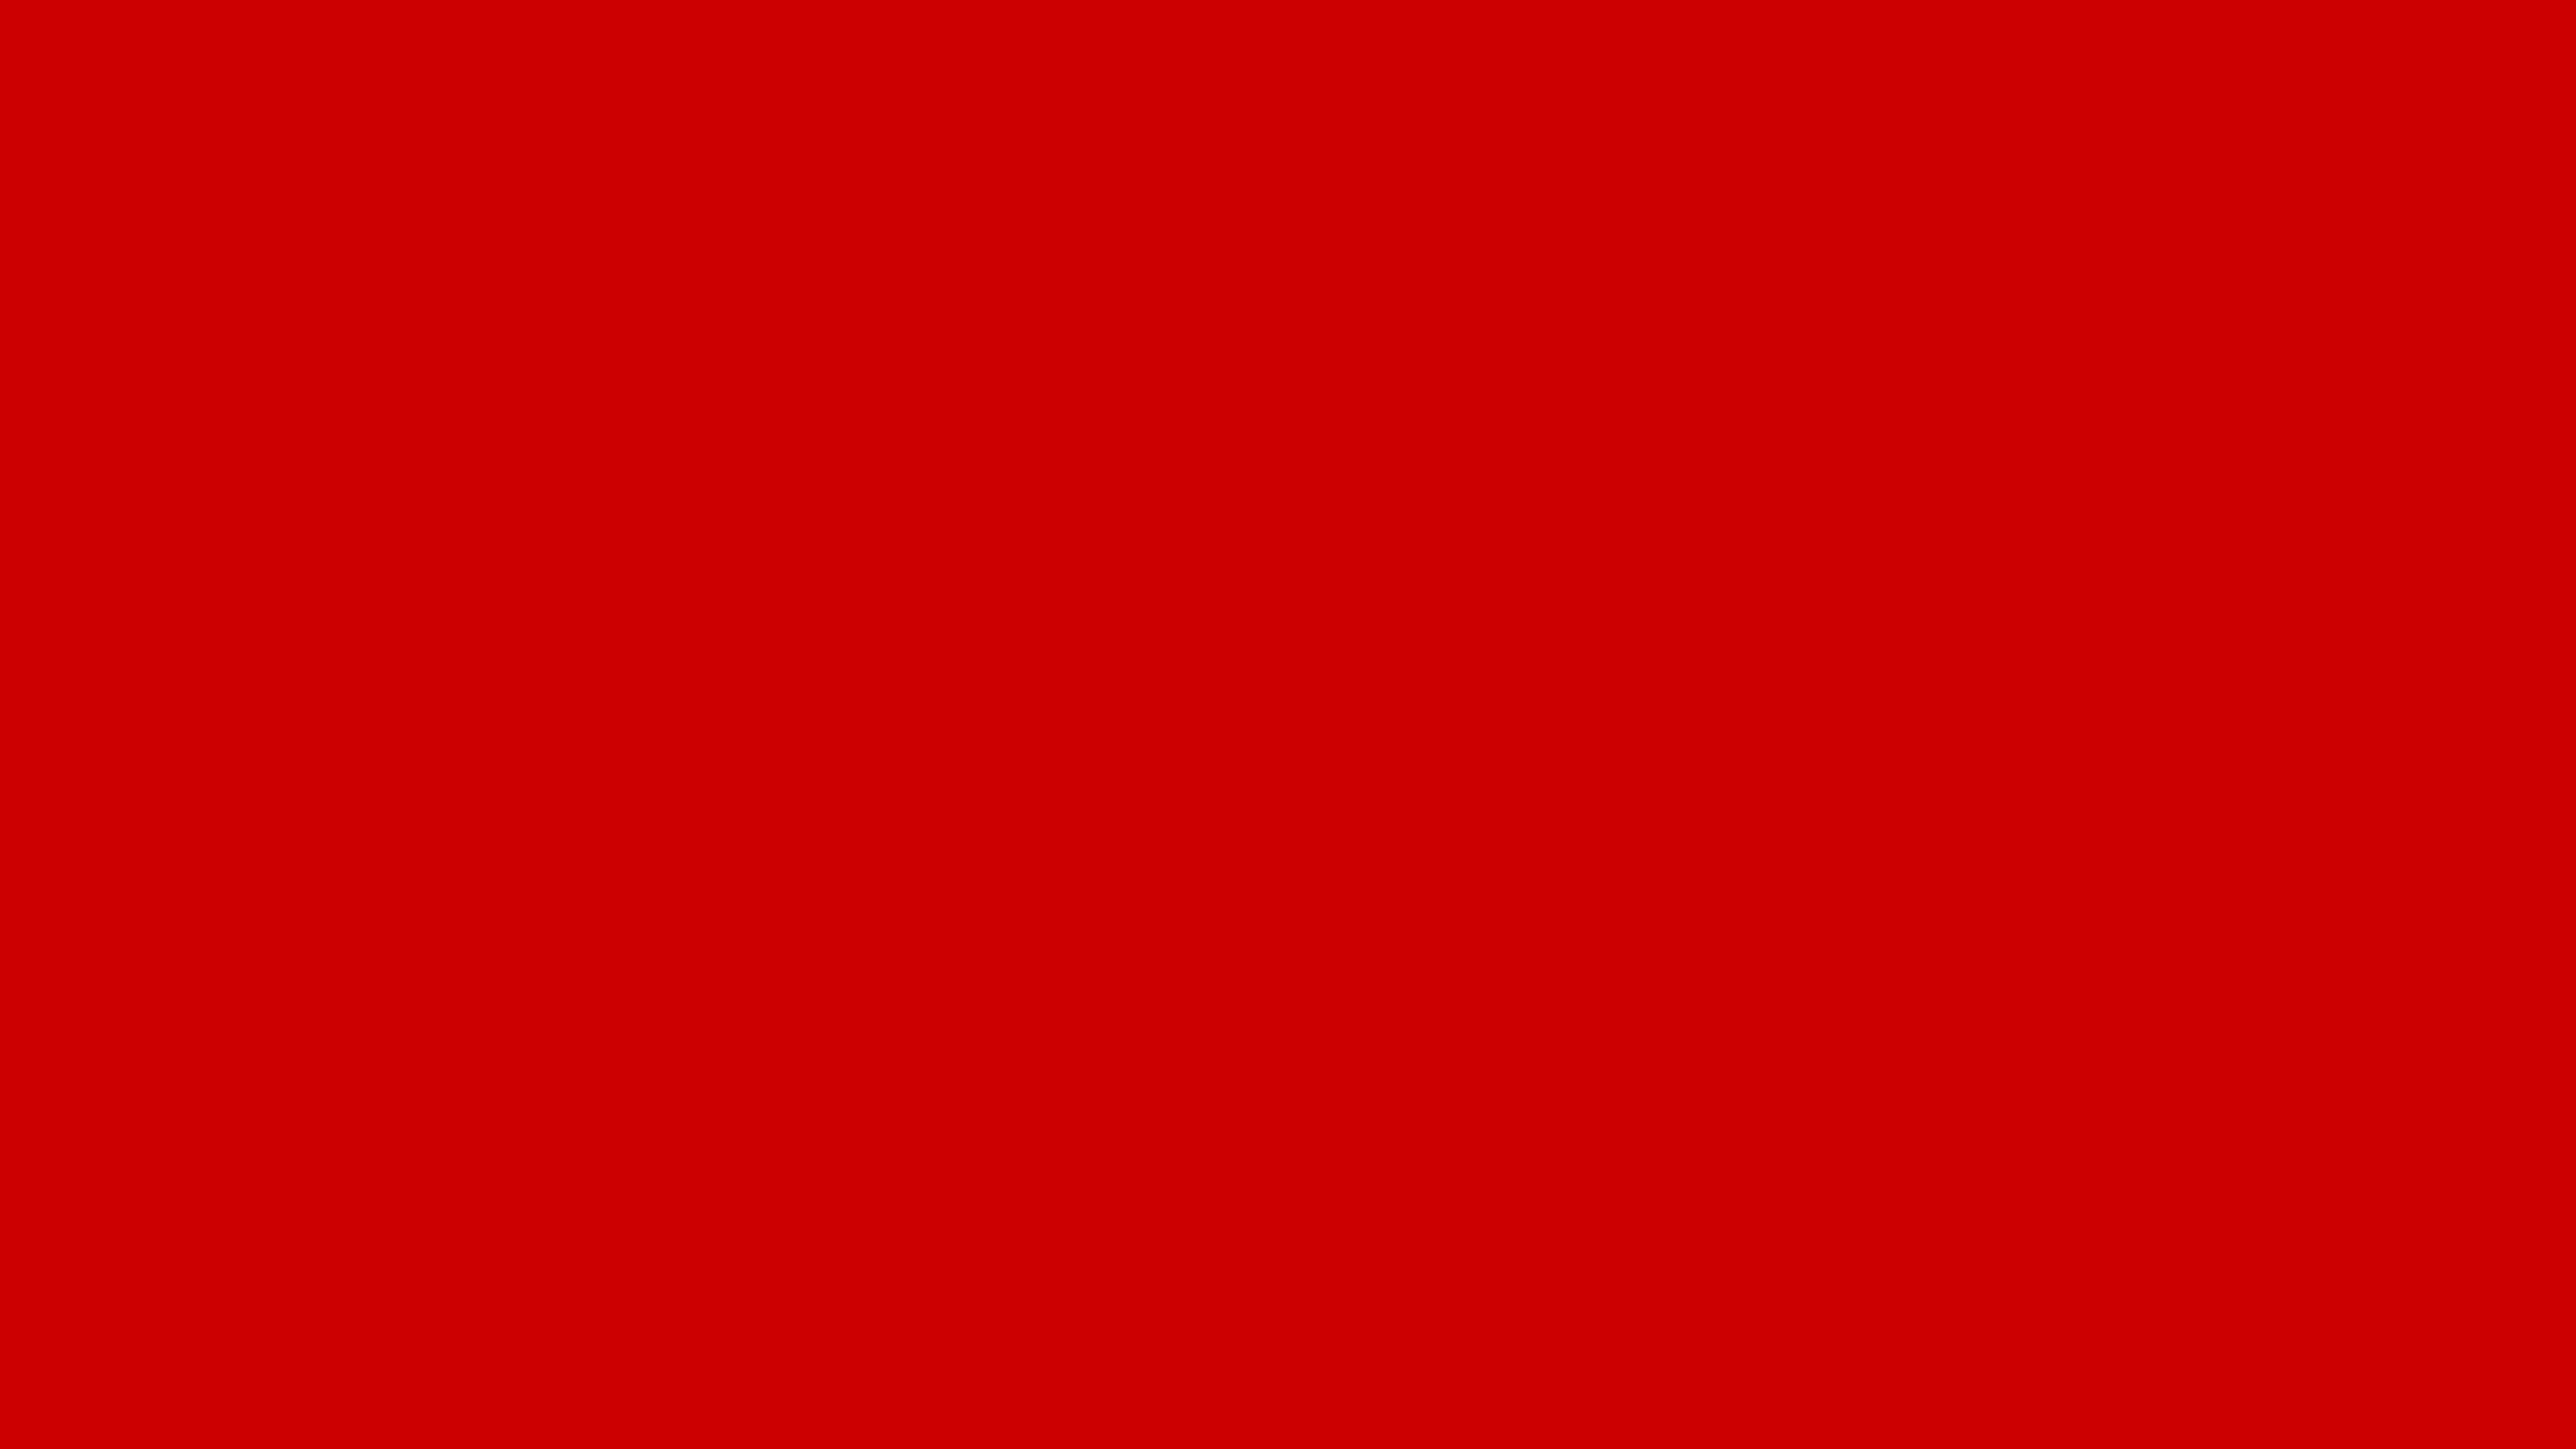 3840x2160 Boston University Red Solid Color Background